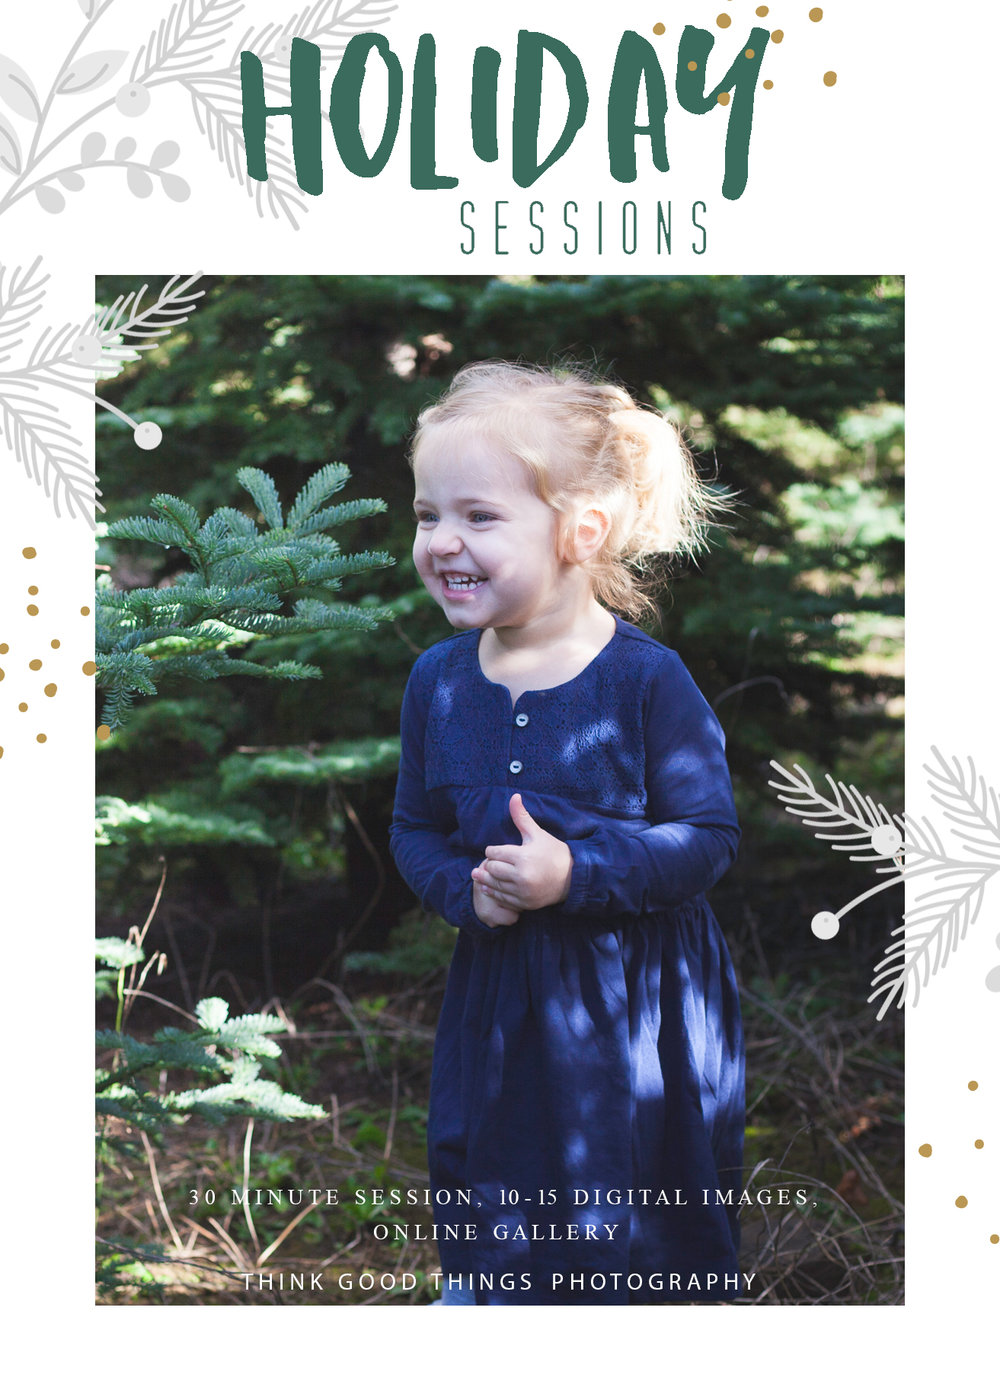 Outdoor Family Photos OR just the kids -  30 minute shoot, 10 digital images with option to add greeting cards at a discounted price. $100 total, with a deposit of $40 due at booking.  December 10th Time Slots Available  10:00am 10:45am 11:30am 12:15pm  1:00pm 1:45pm 2:30pm 3:15pm 4:00pm 4:45pm  Can also combine with Awkward Family Photos offer for $150!  Outdoor location TBD - near Silverton